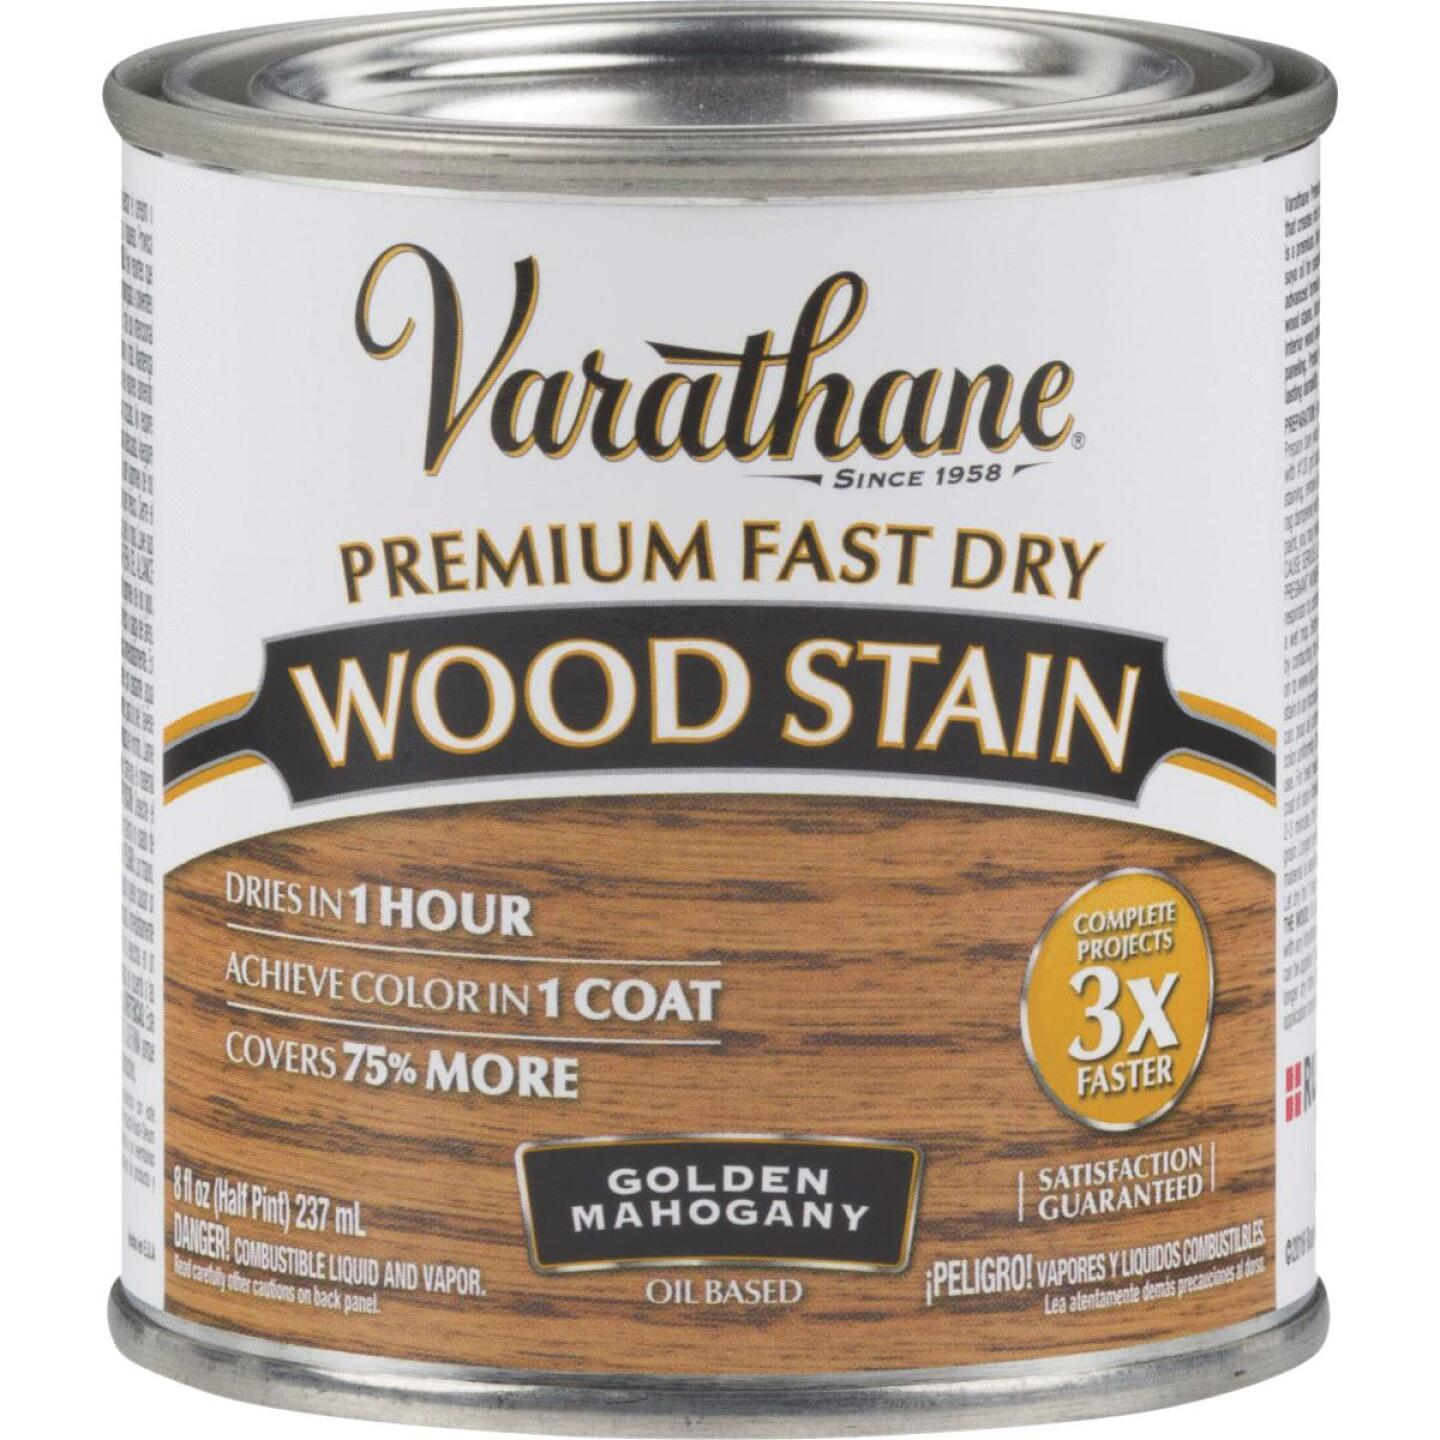 Varathane Fast Dry Golden Mahogany Urethane Modified Alkyd Interior Wood Stain, 1/2 Pt. Image 1